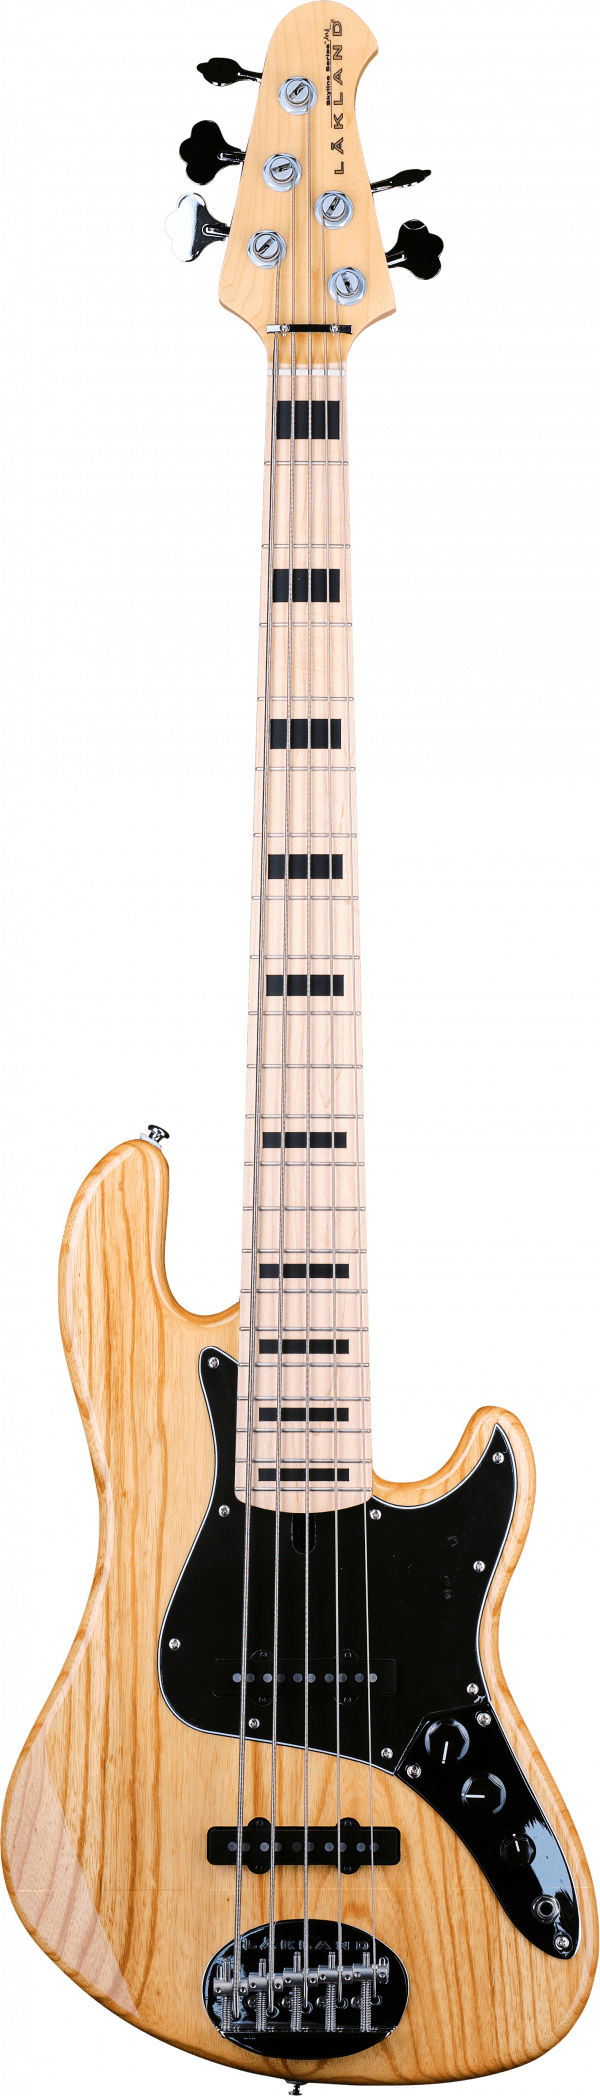 Lakland Skyline Darryl Jones 5 Swamp Ash